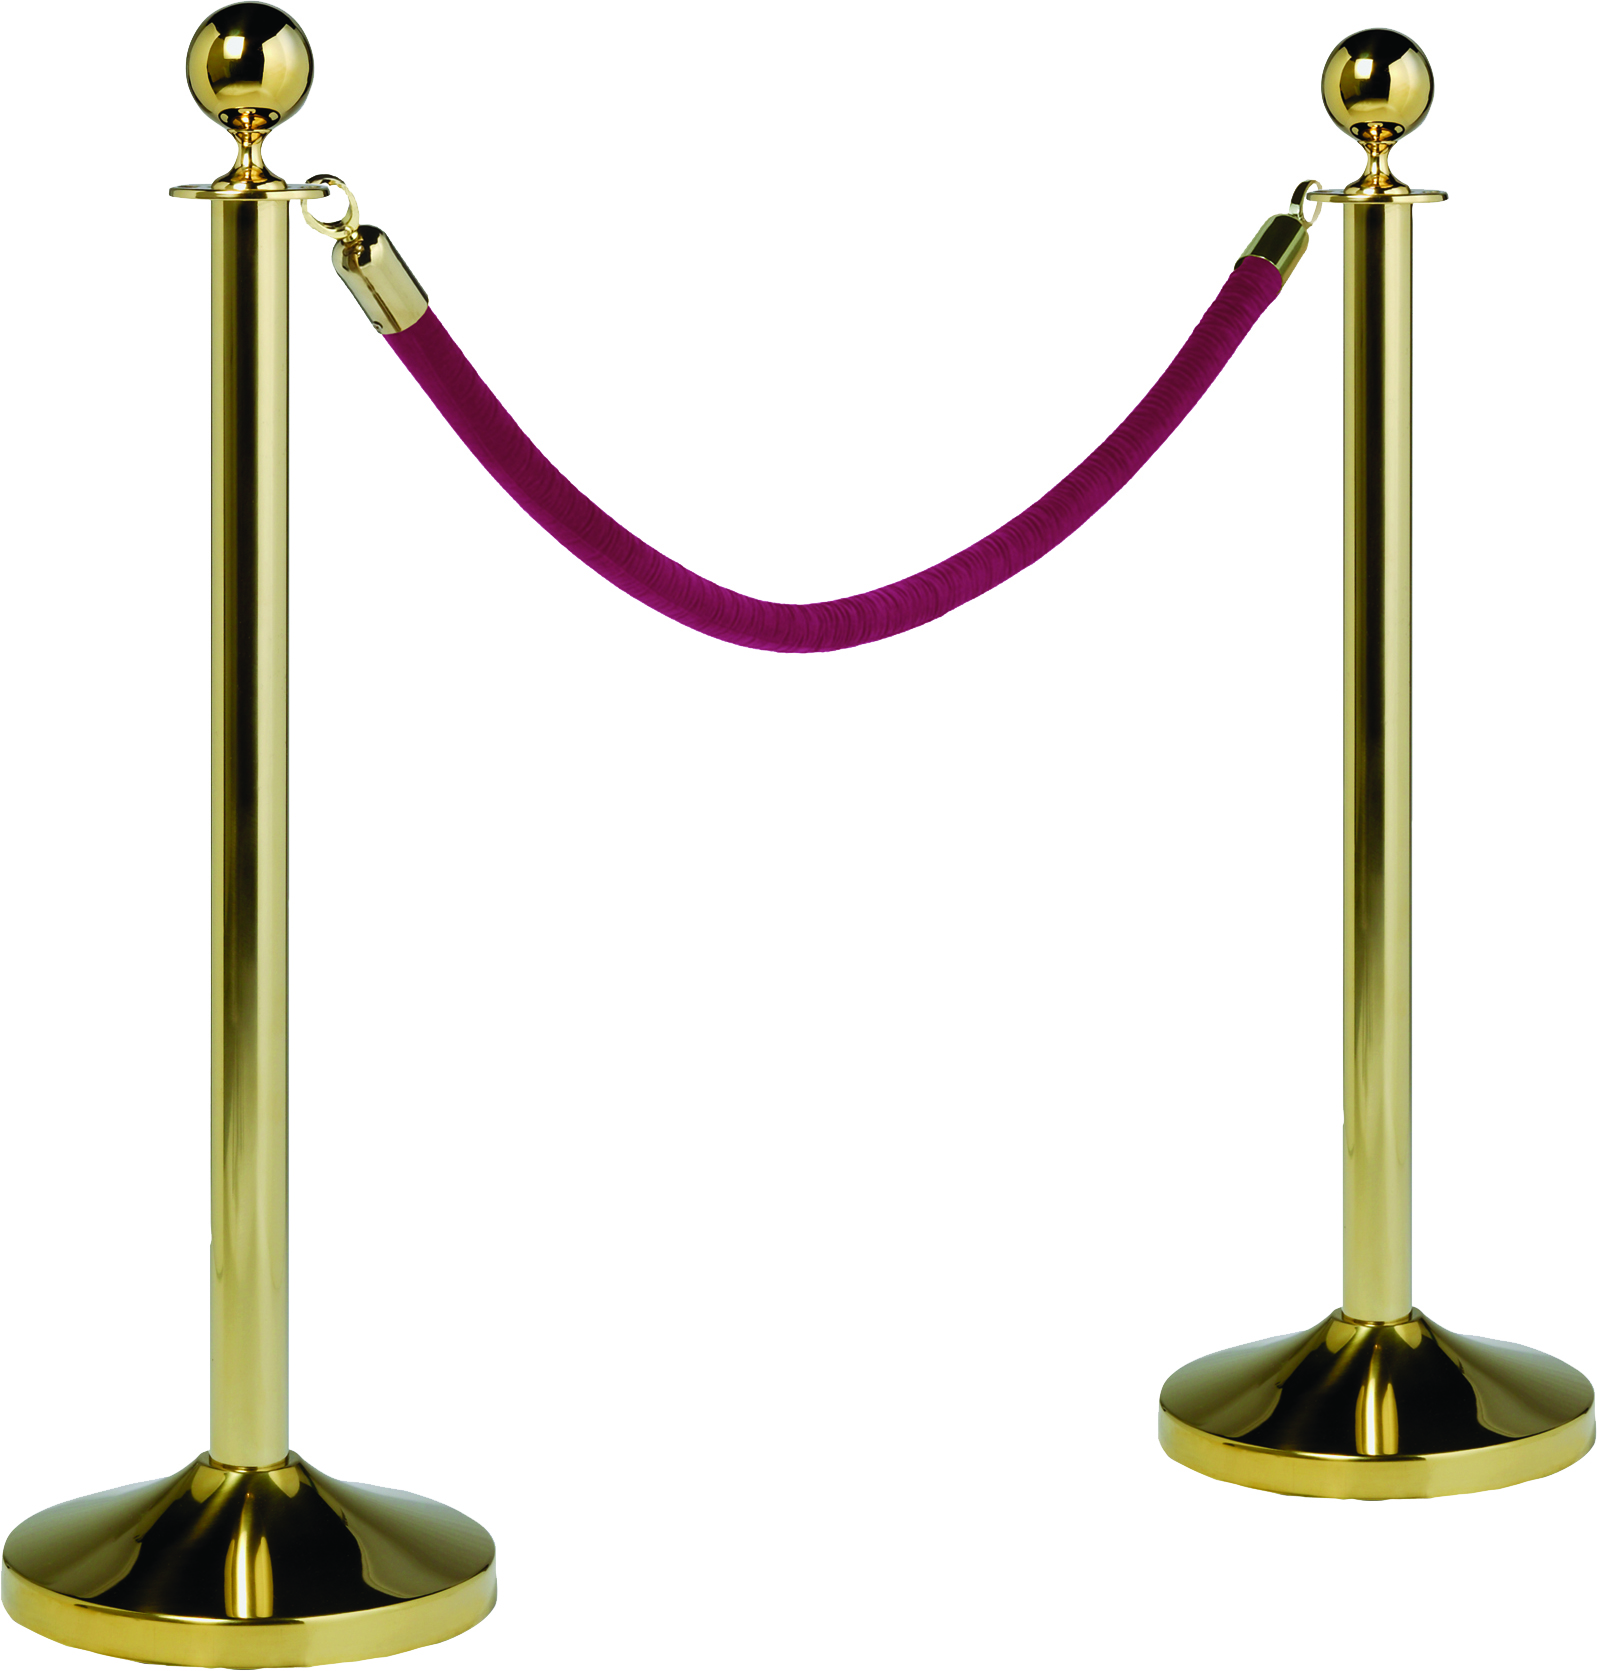 Gold Stanchion Post Higginsie : Gold Stanchion Posts with Red Rope from higgins.ie size 1597 x 1671 jpeg 762kB